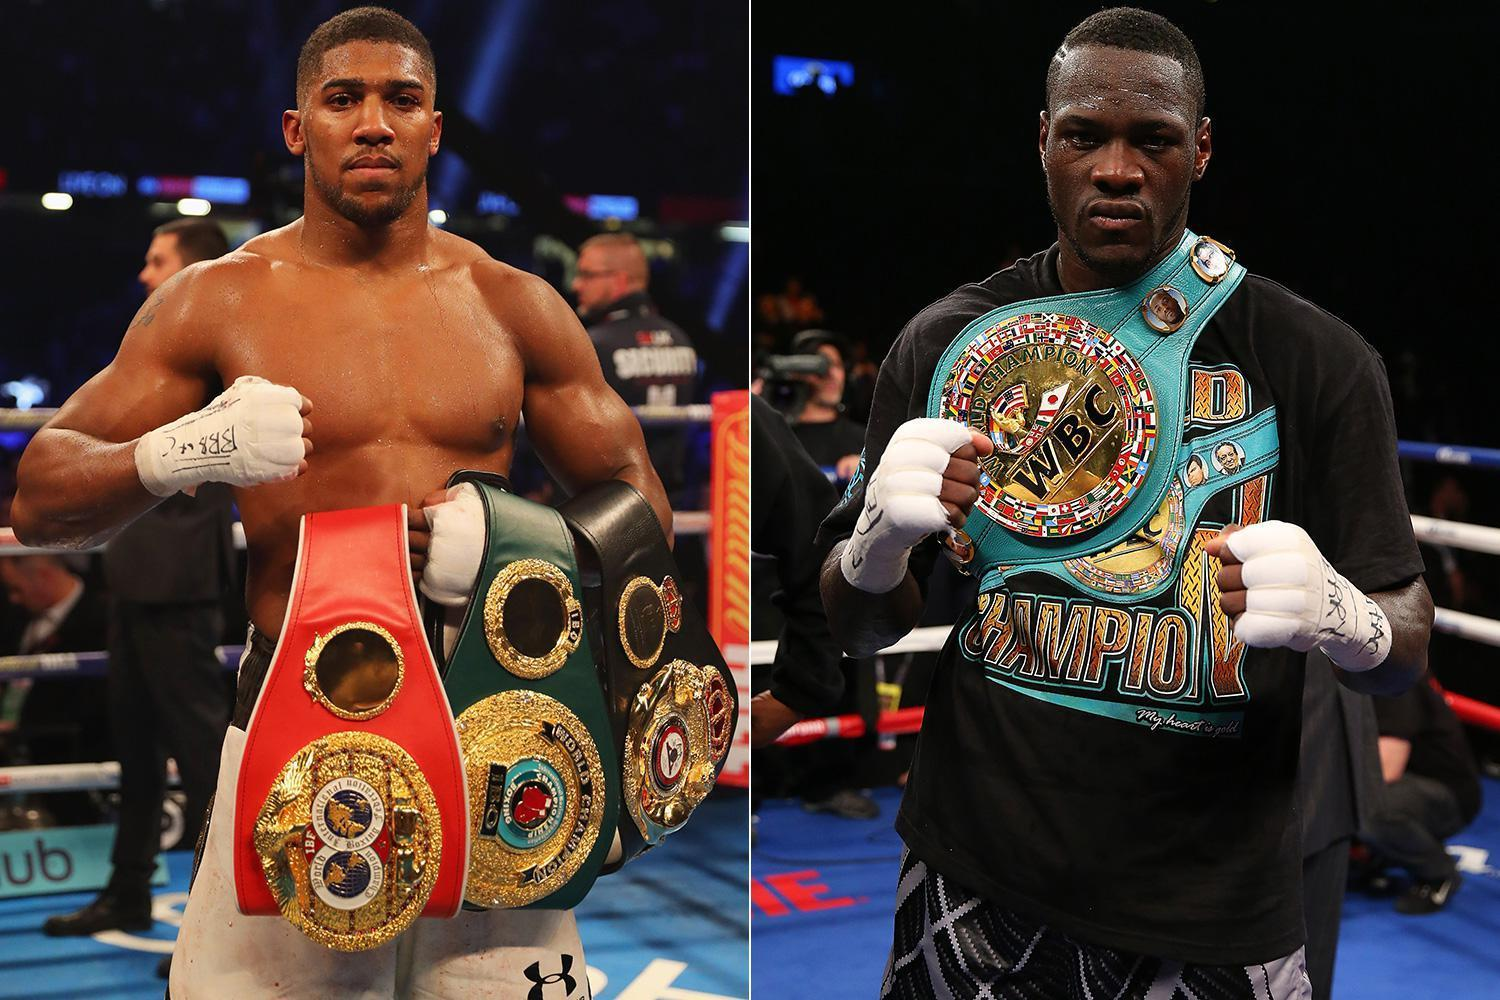 Anthony Joshua reveals he will fight Deontay Wilder in Las Vegas after Joseph Parker bout